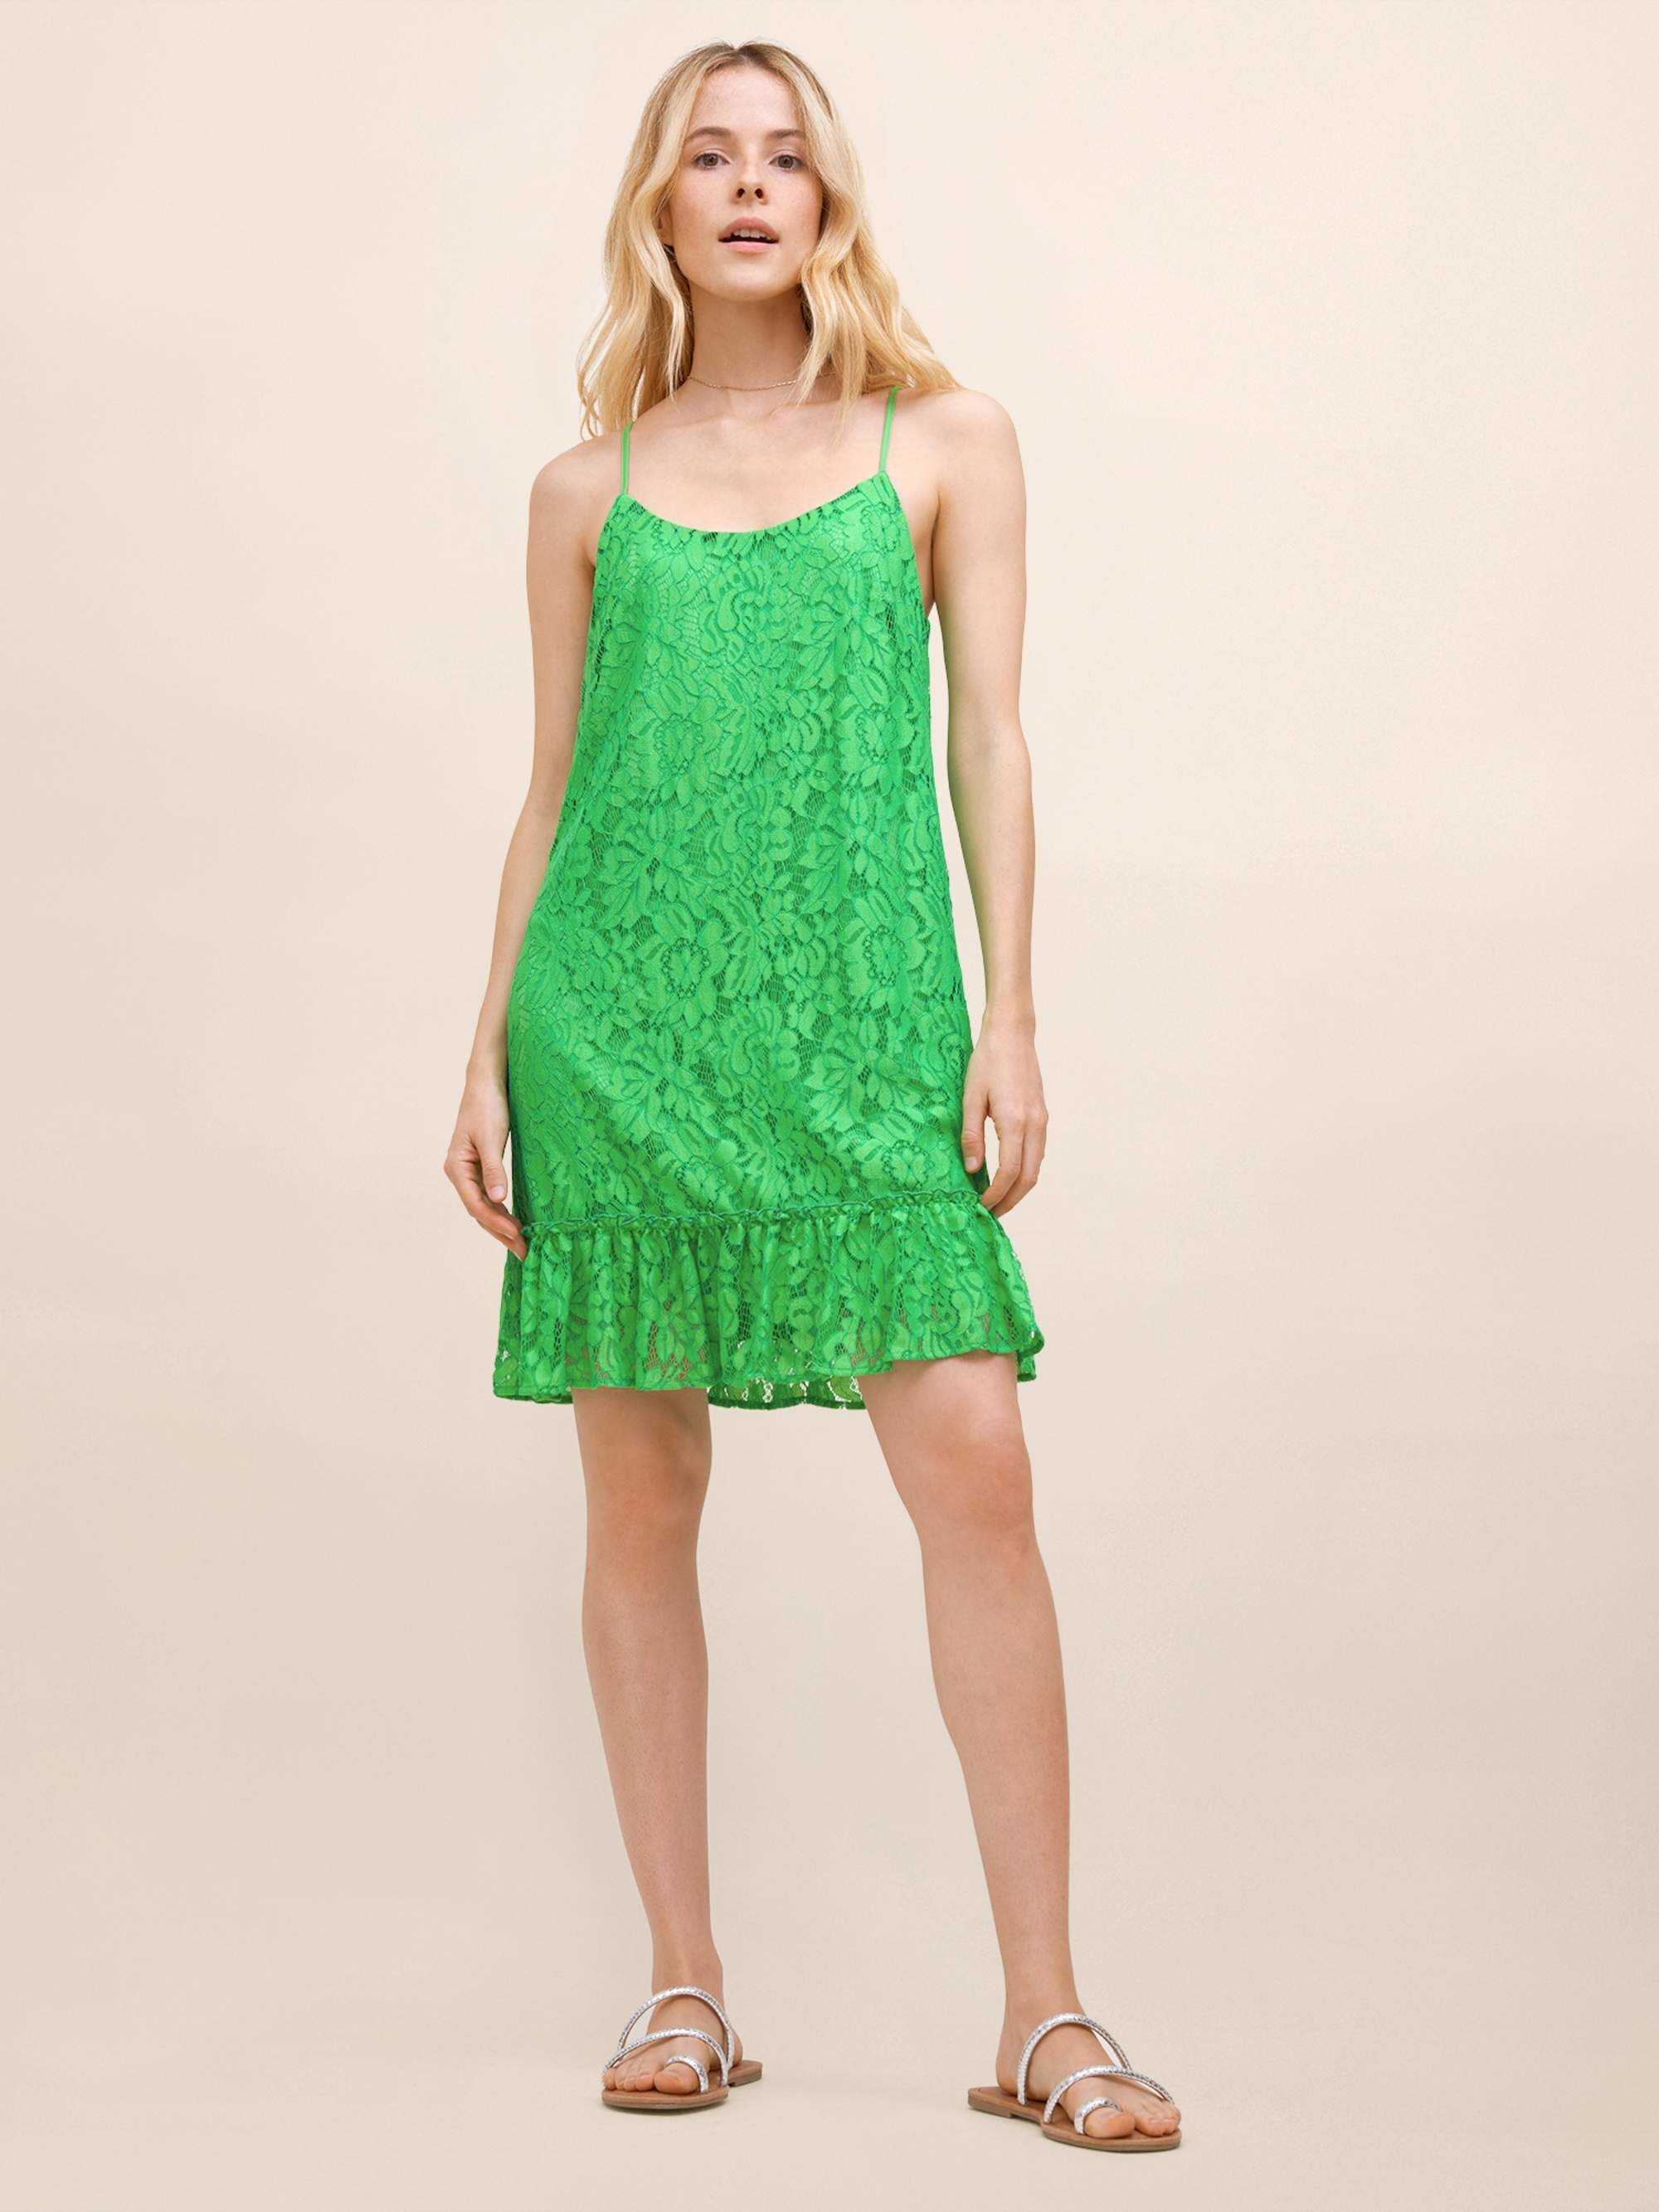 model in a green lace sleeveless dress with ruffle hem